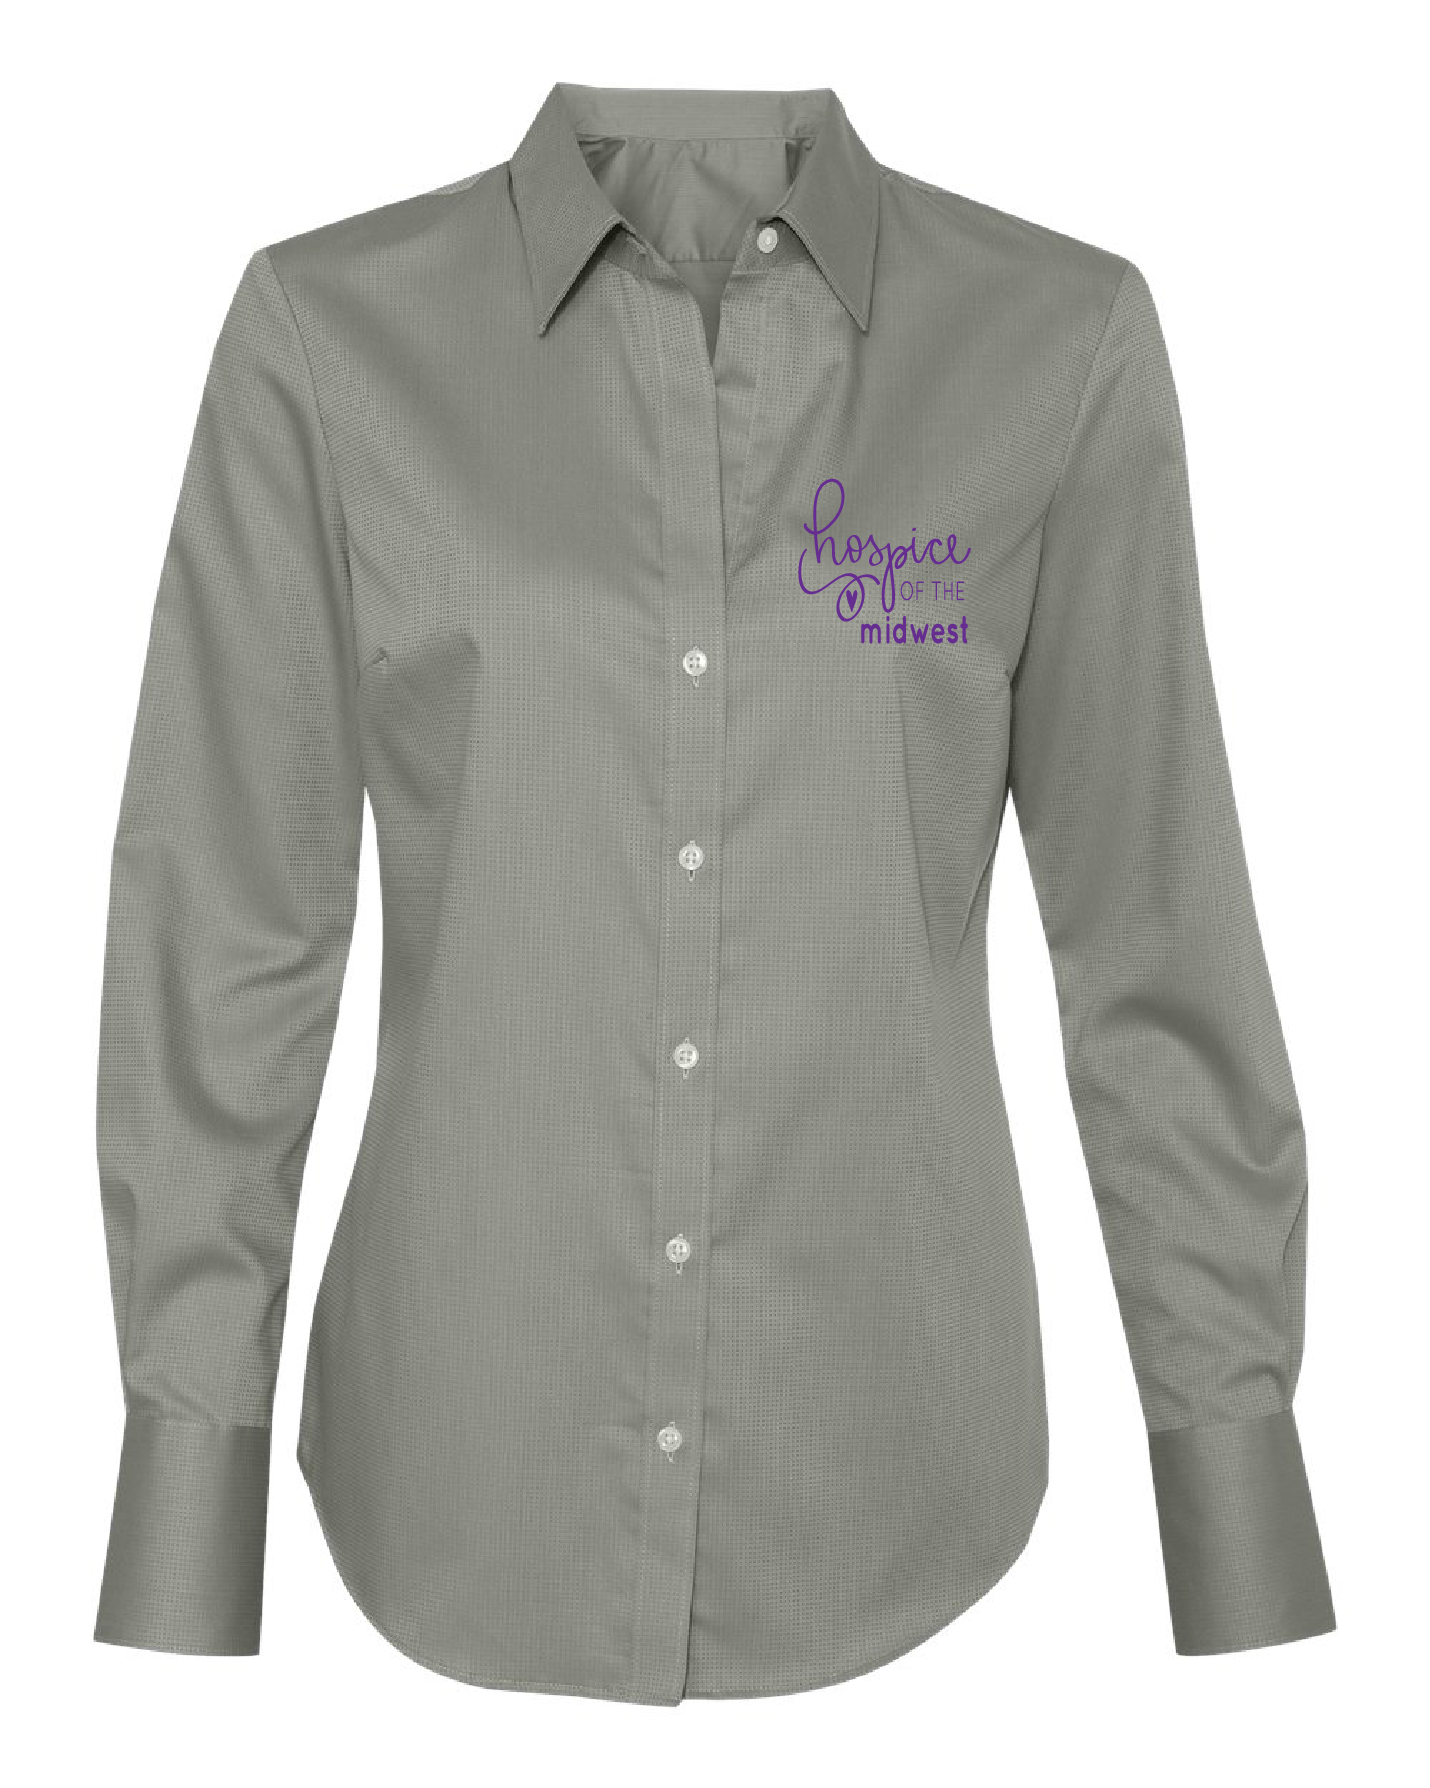 Hospice of the Midwest-Calvin Klein - Women's Non-Iron Dobby Pindot Shirt-13CK030